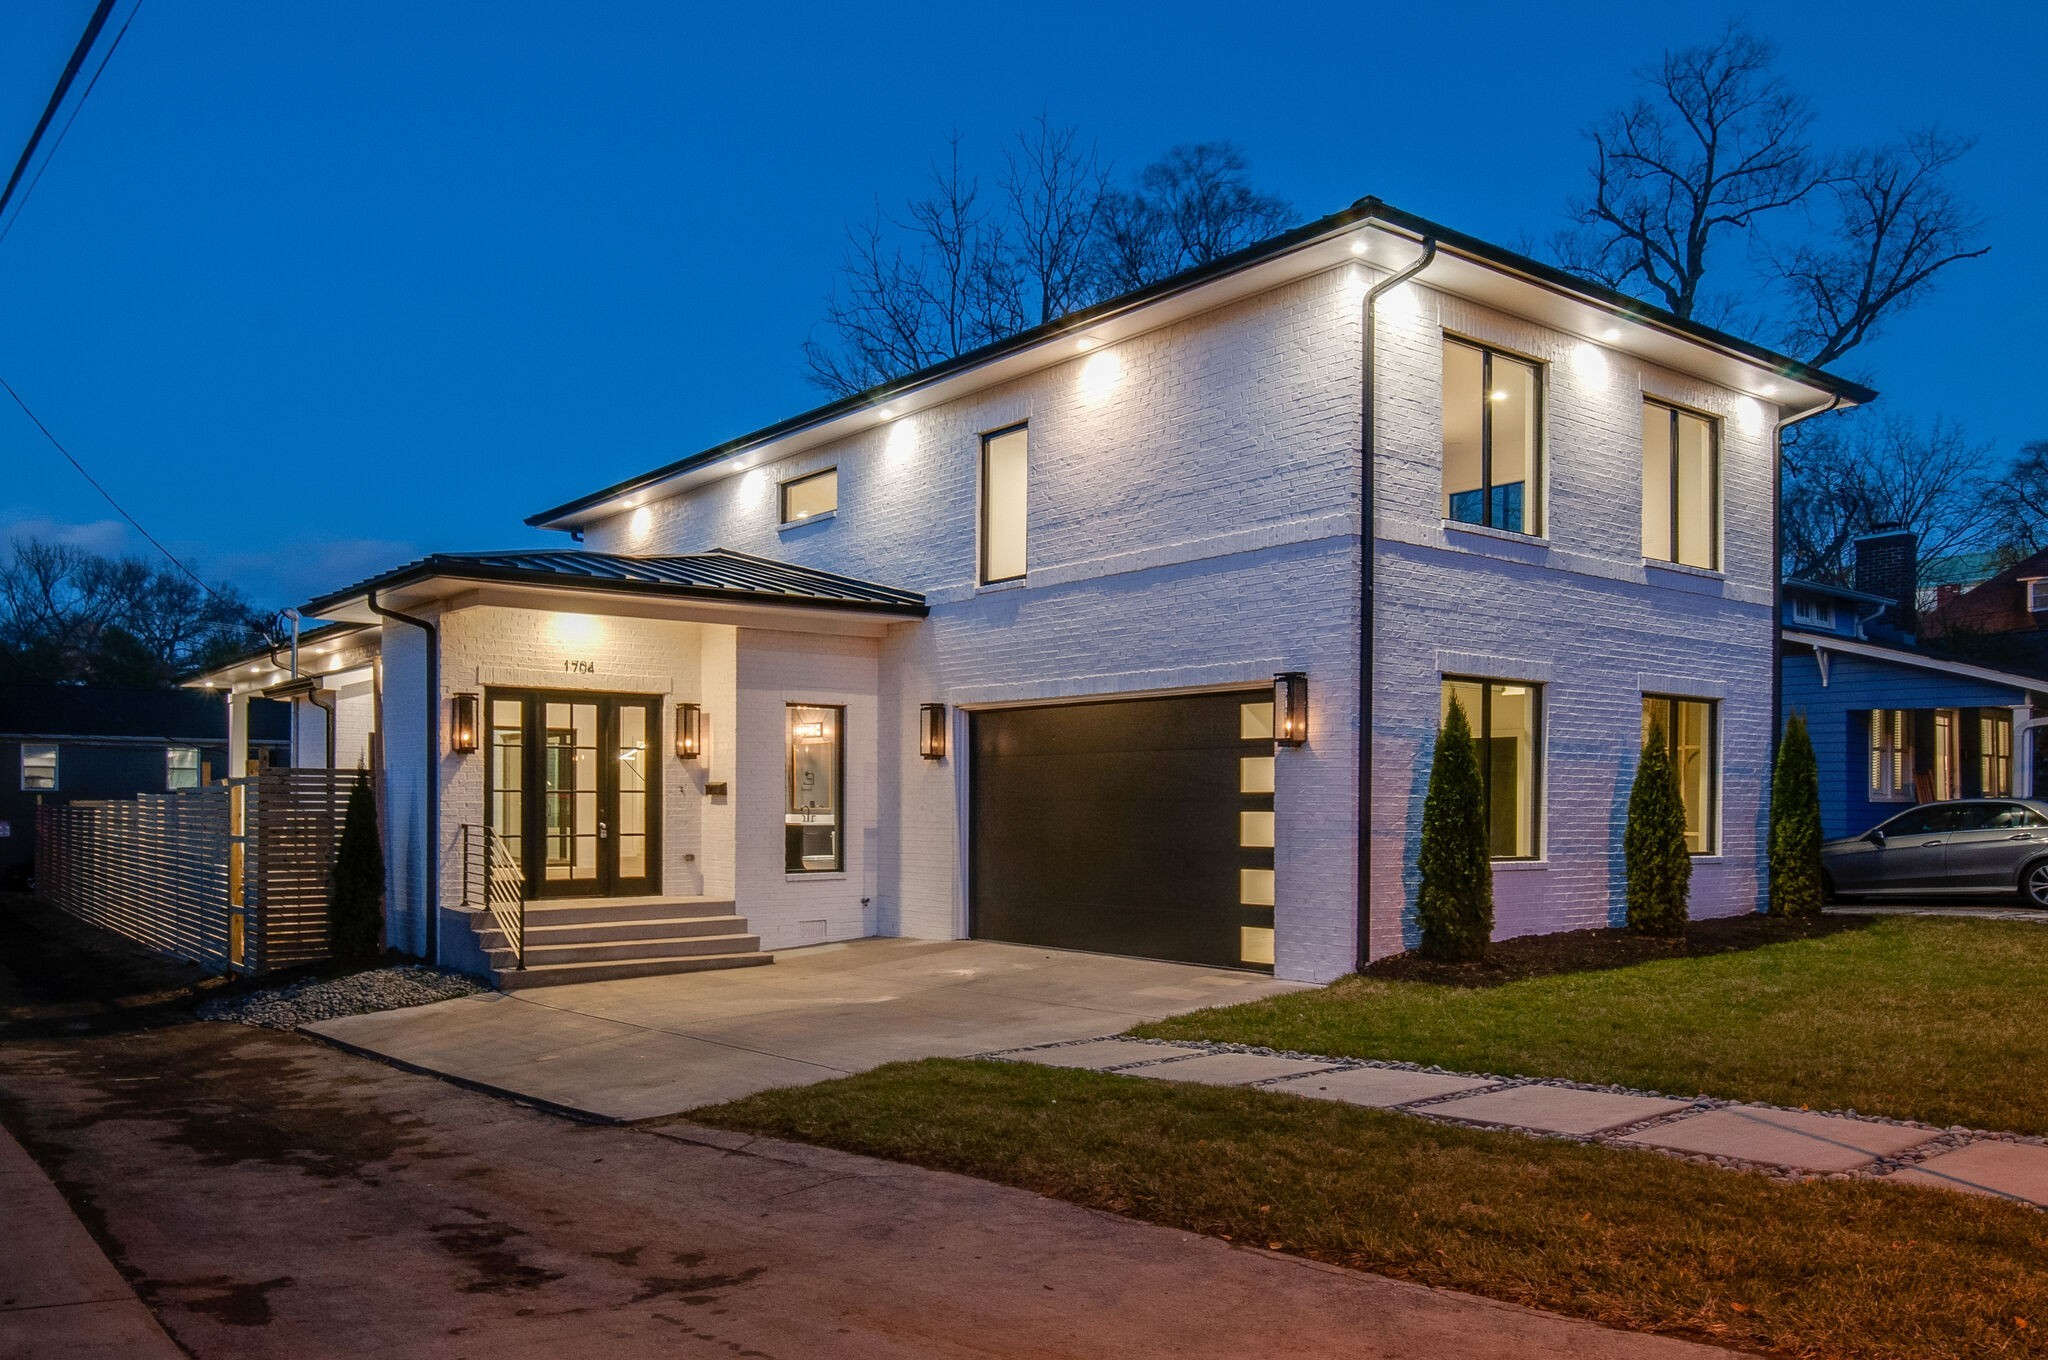 The search is over for your exquisitely executed urban abode in the Vandy-Hillsboro-Belmont district! Chic modern finishes & masterfully appointed designs adorn every square inch of this rare opportunity. Check off your entire wish list including a main floor spa-inspired master suite, IG envy dream kitchen, $30k of smart home features PLUS private entry suite over the garage for mother-in-law suite, AirBnB or office, etc. READY for immediate occupancy. Buyer allowance for back yard landscaping.